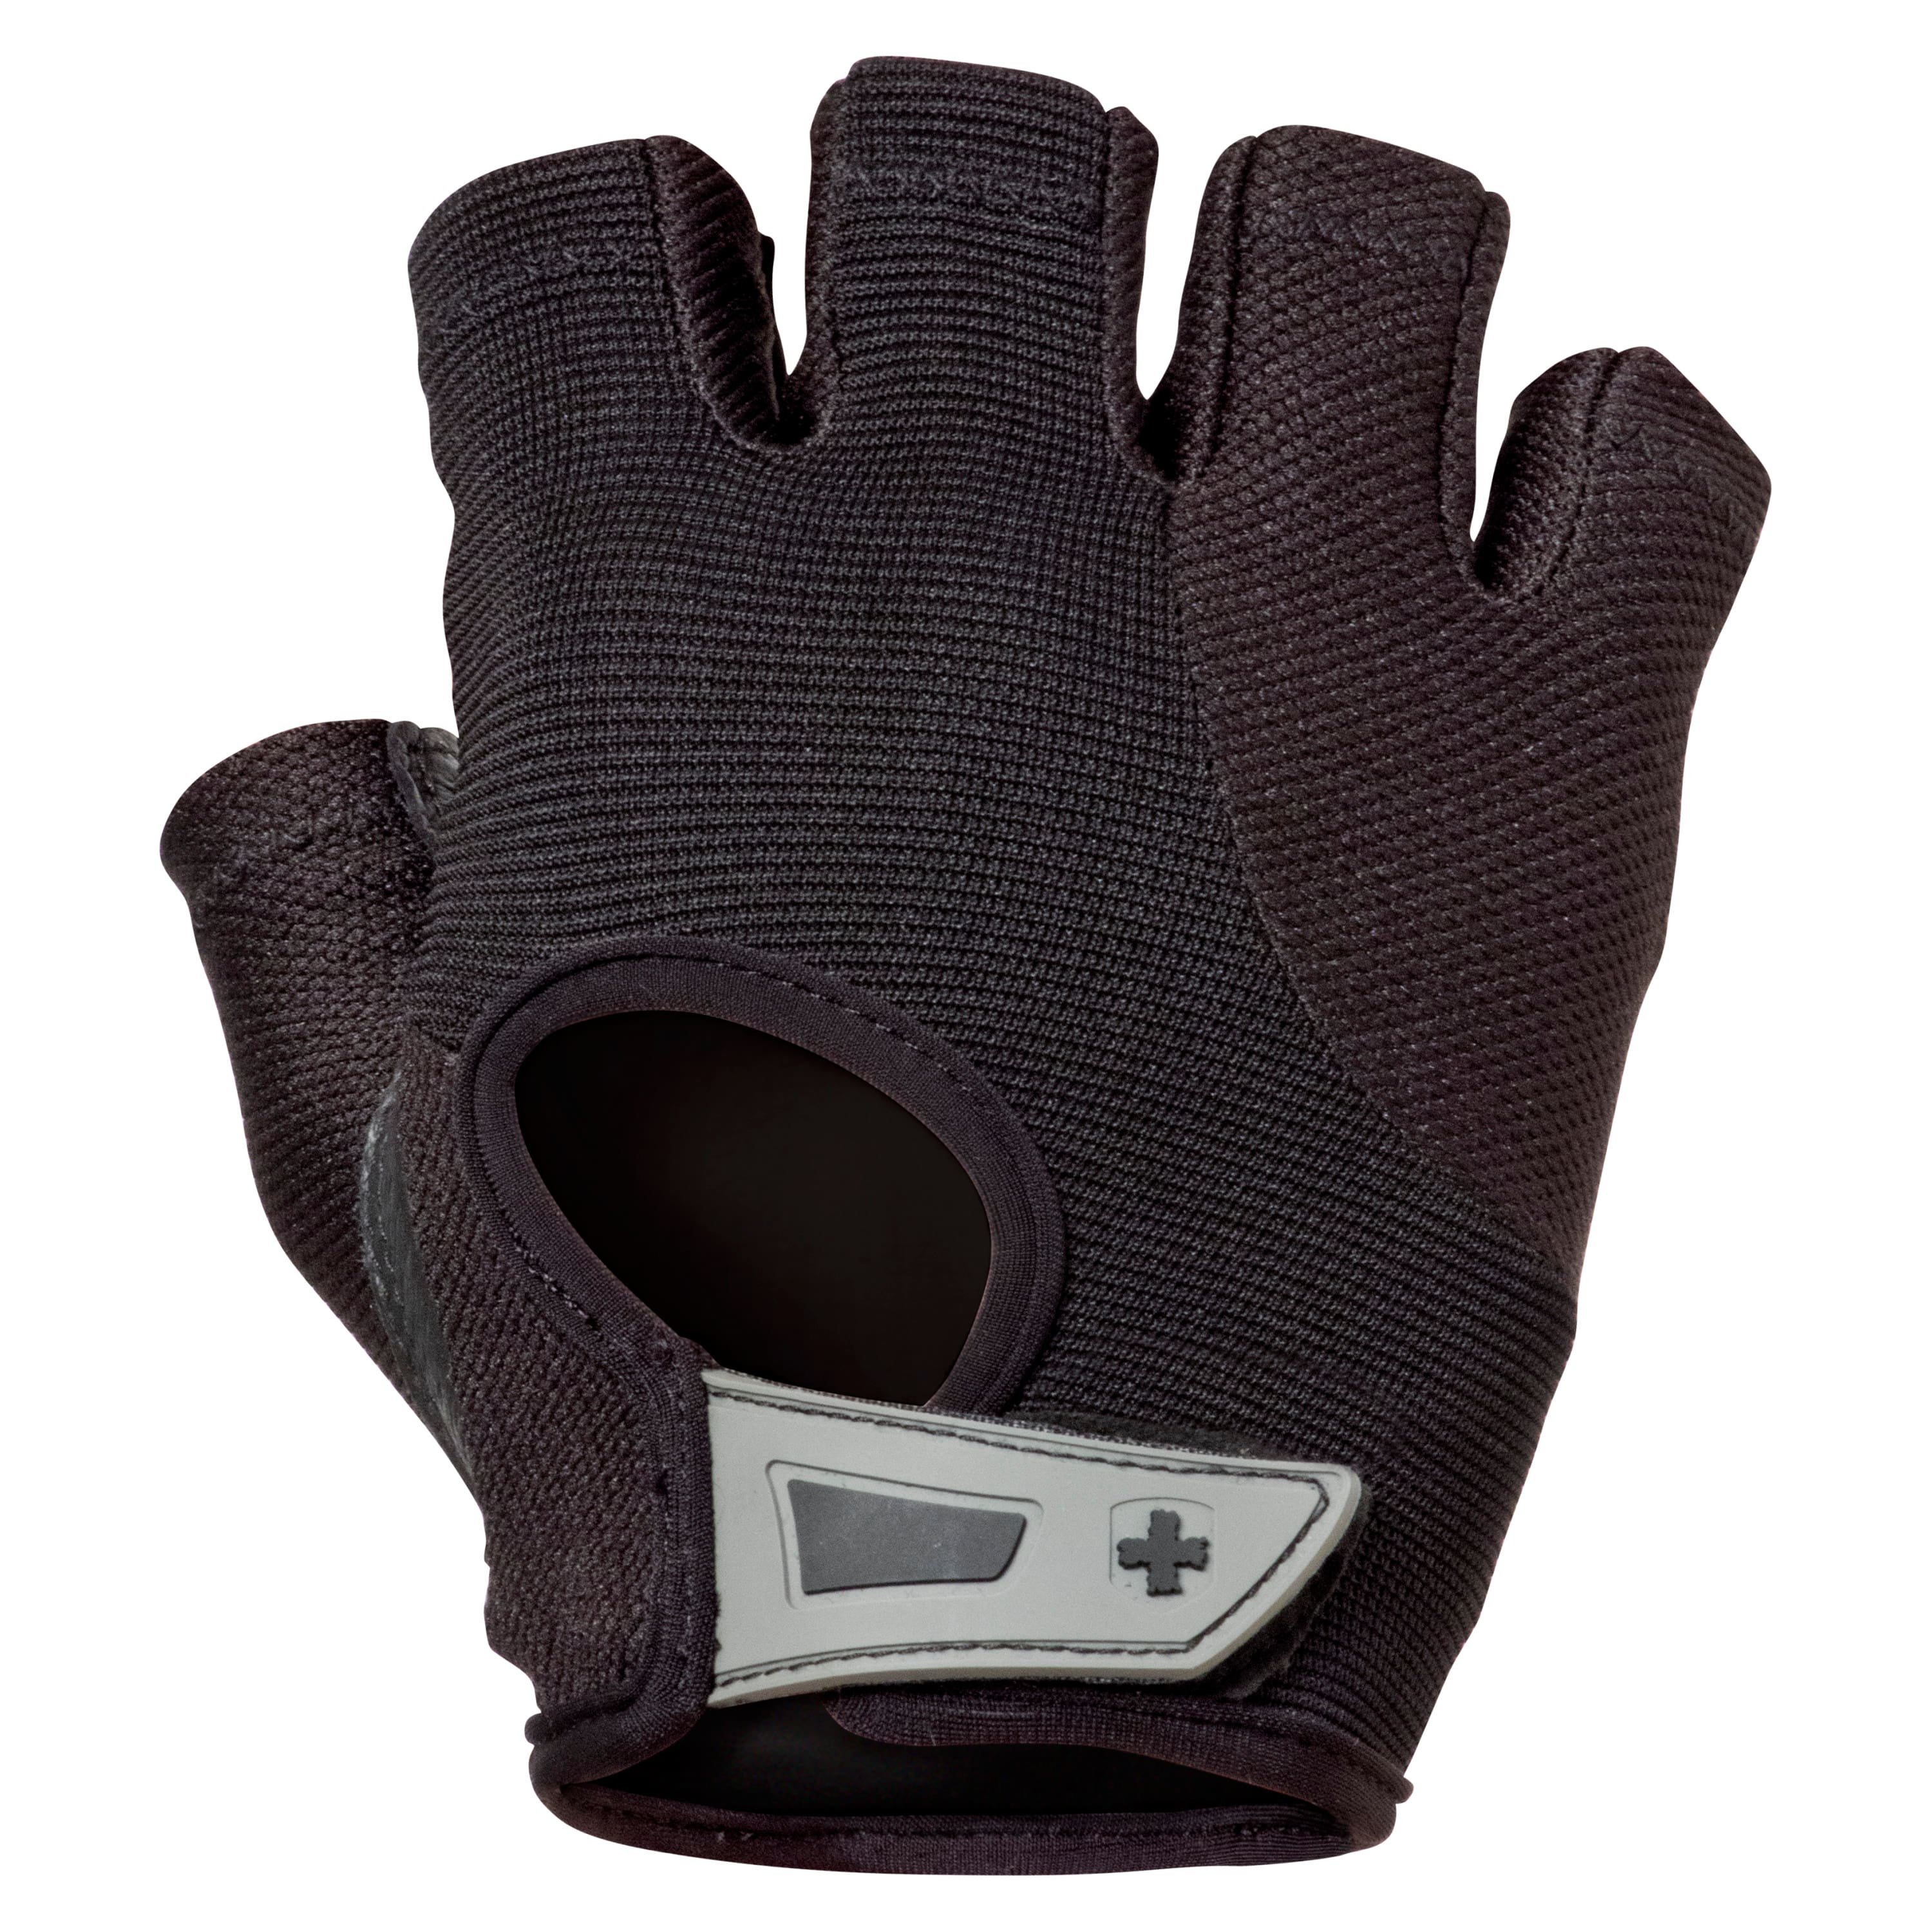 Harbinger Women's Power Weightlifting Gloves (Pair, Small)